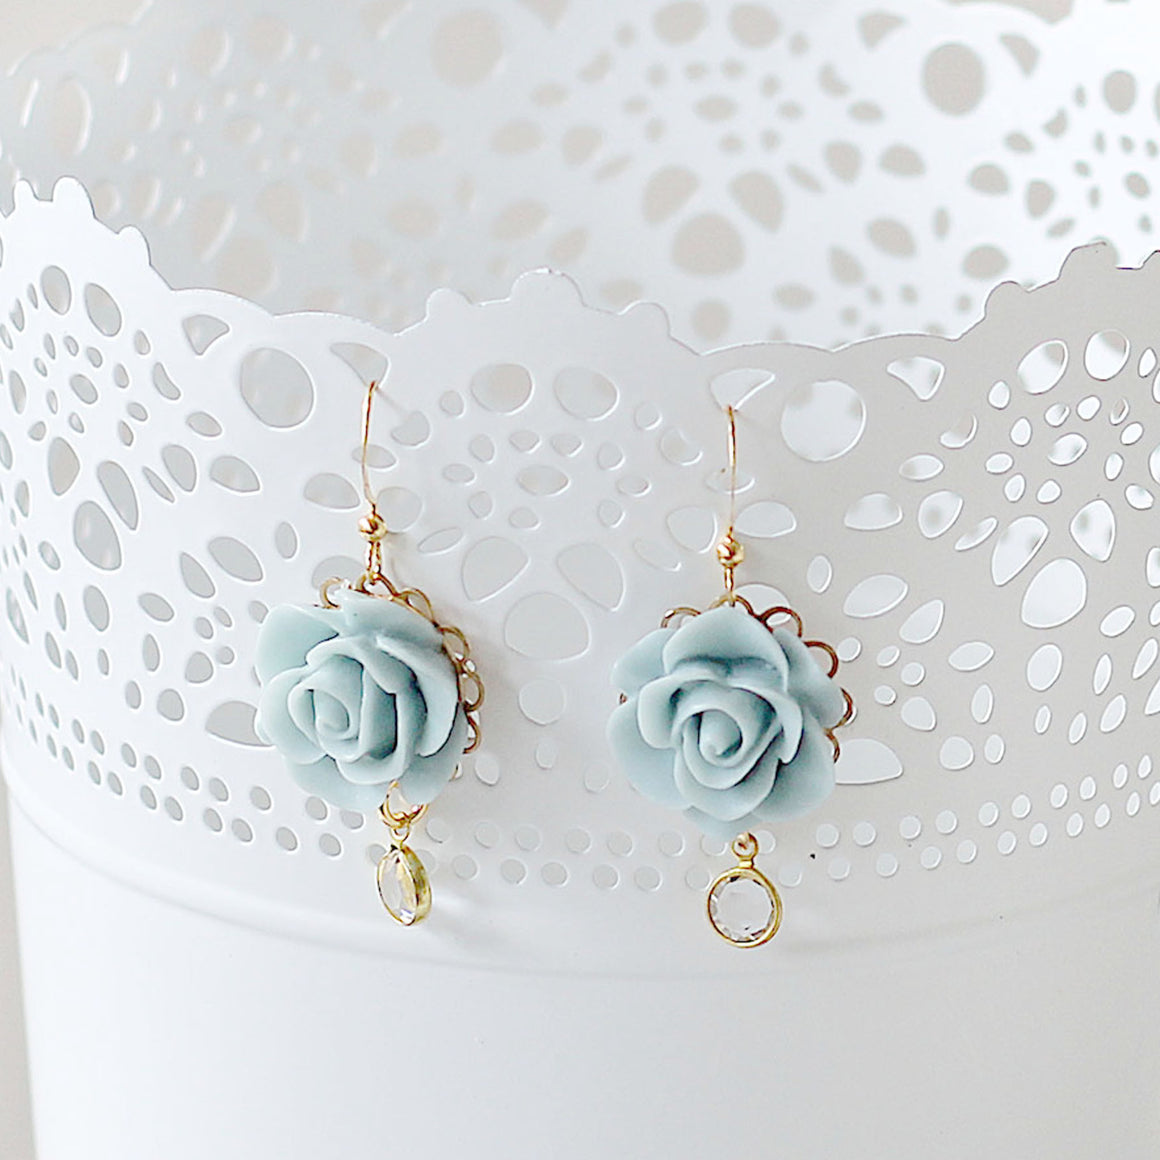 Romantic Blue Rose Earrings hanging